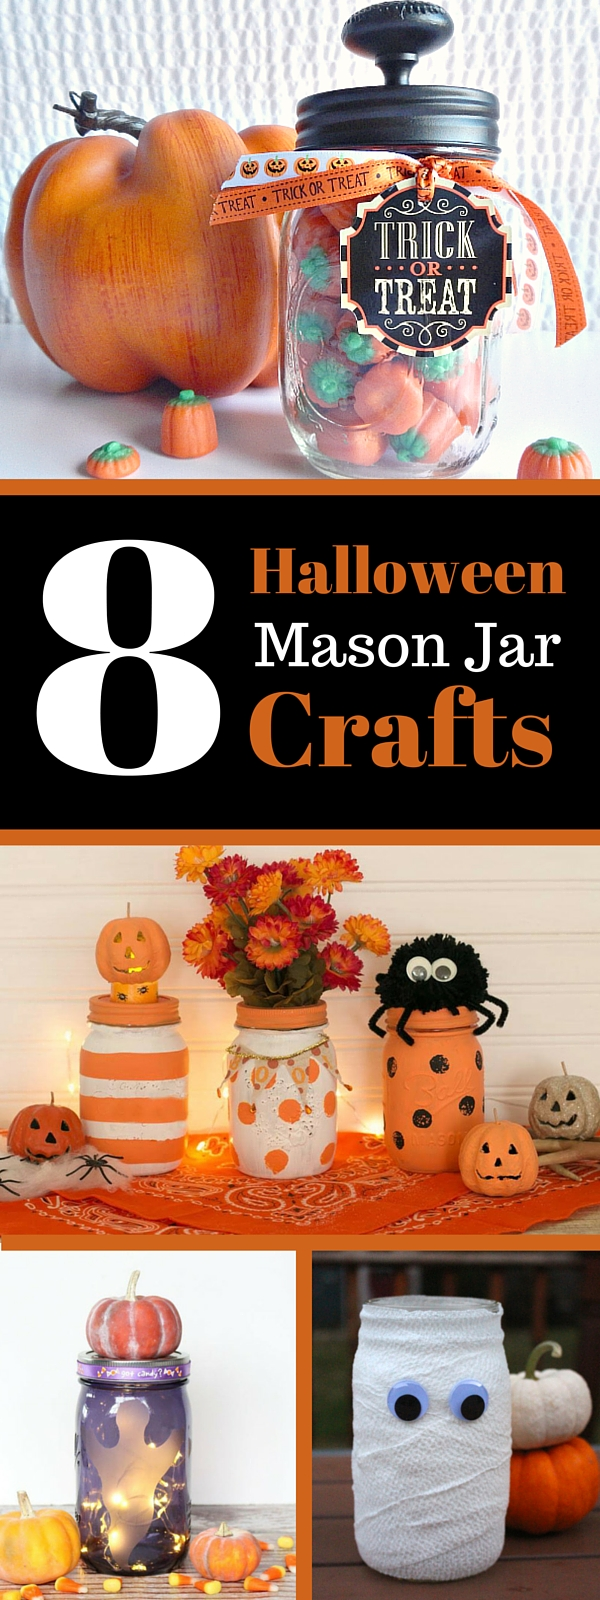 8 Halloween Mason Jar Crafts